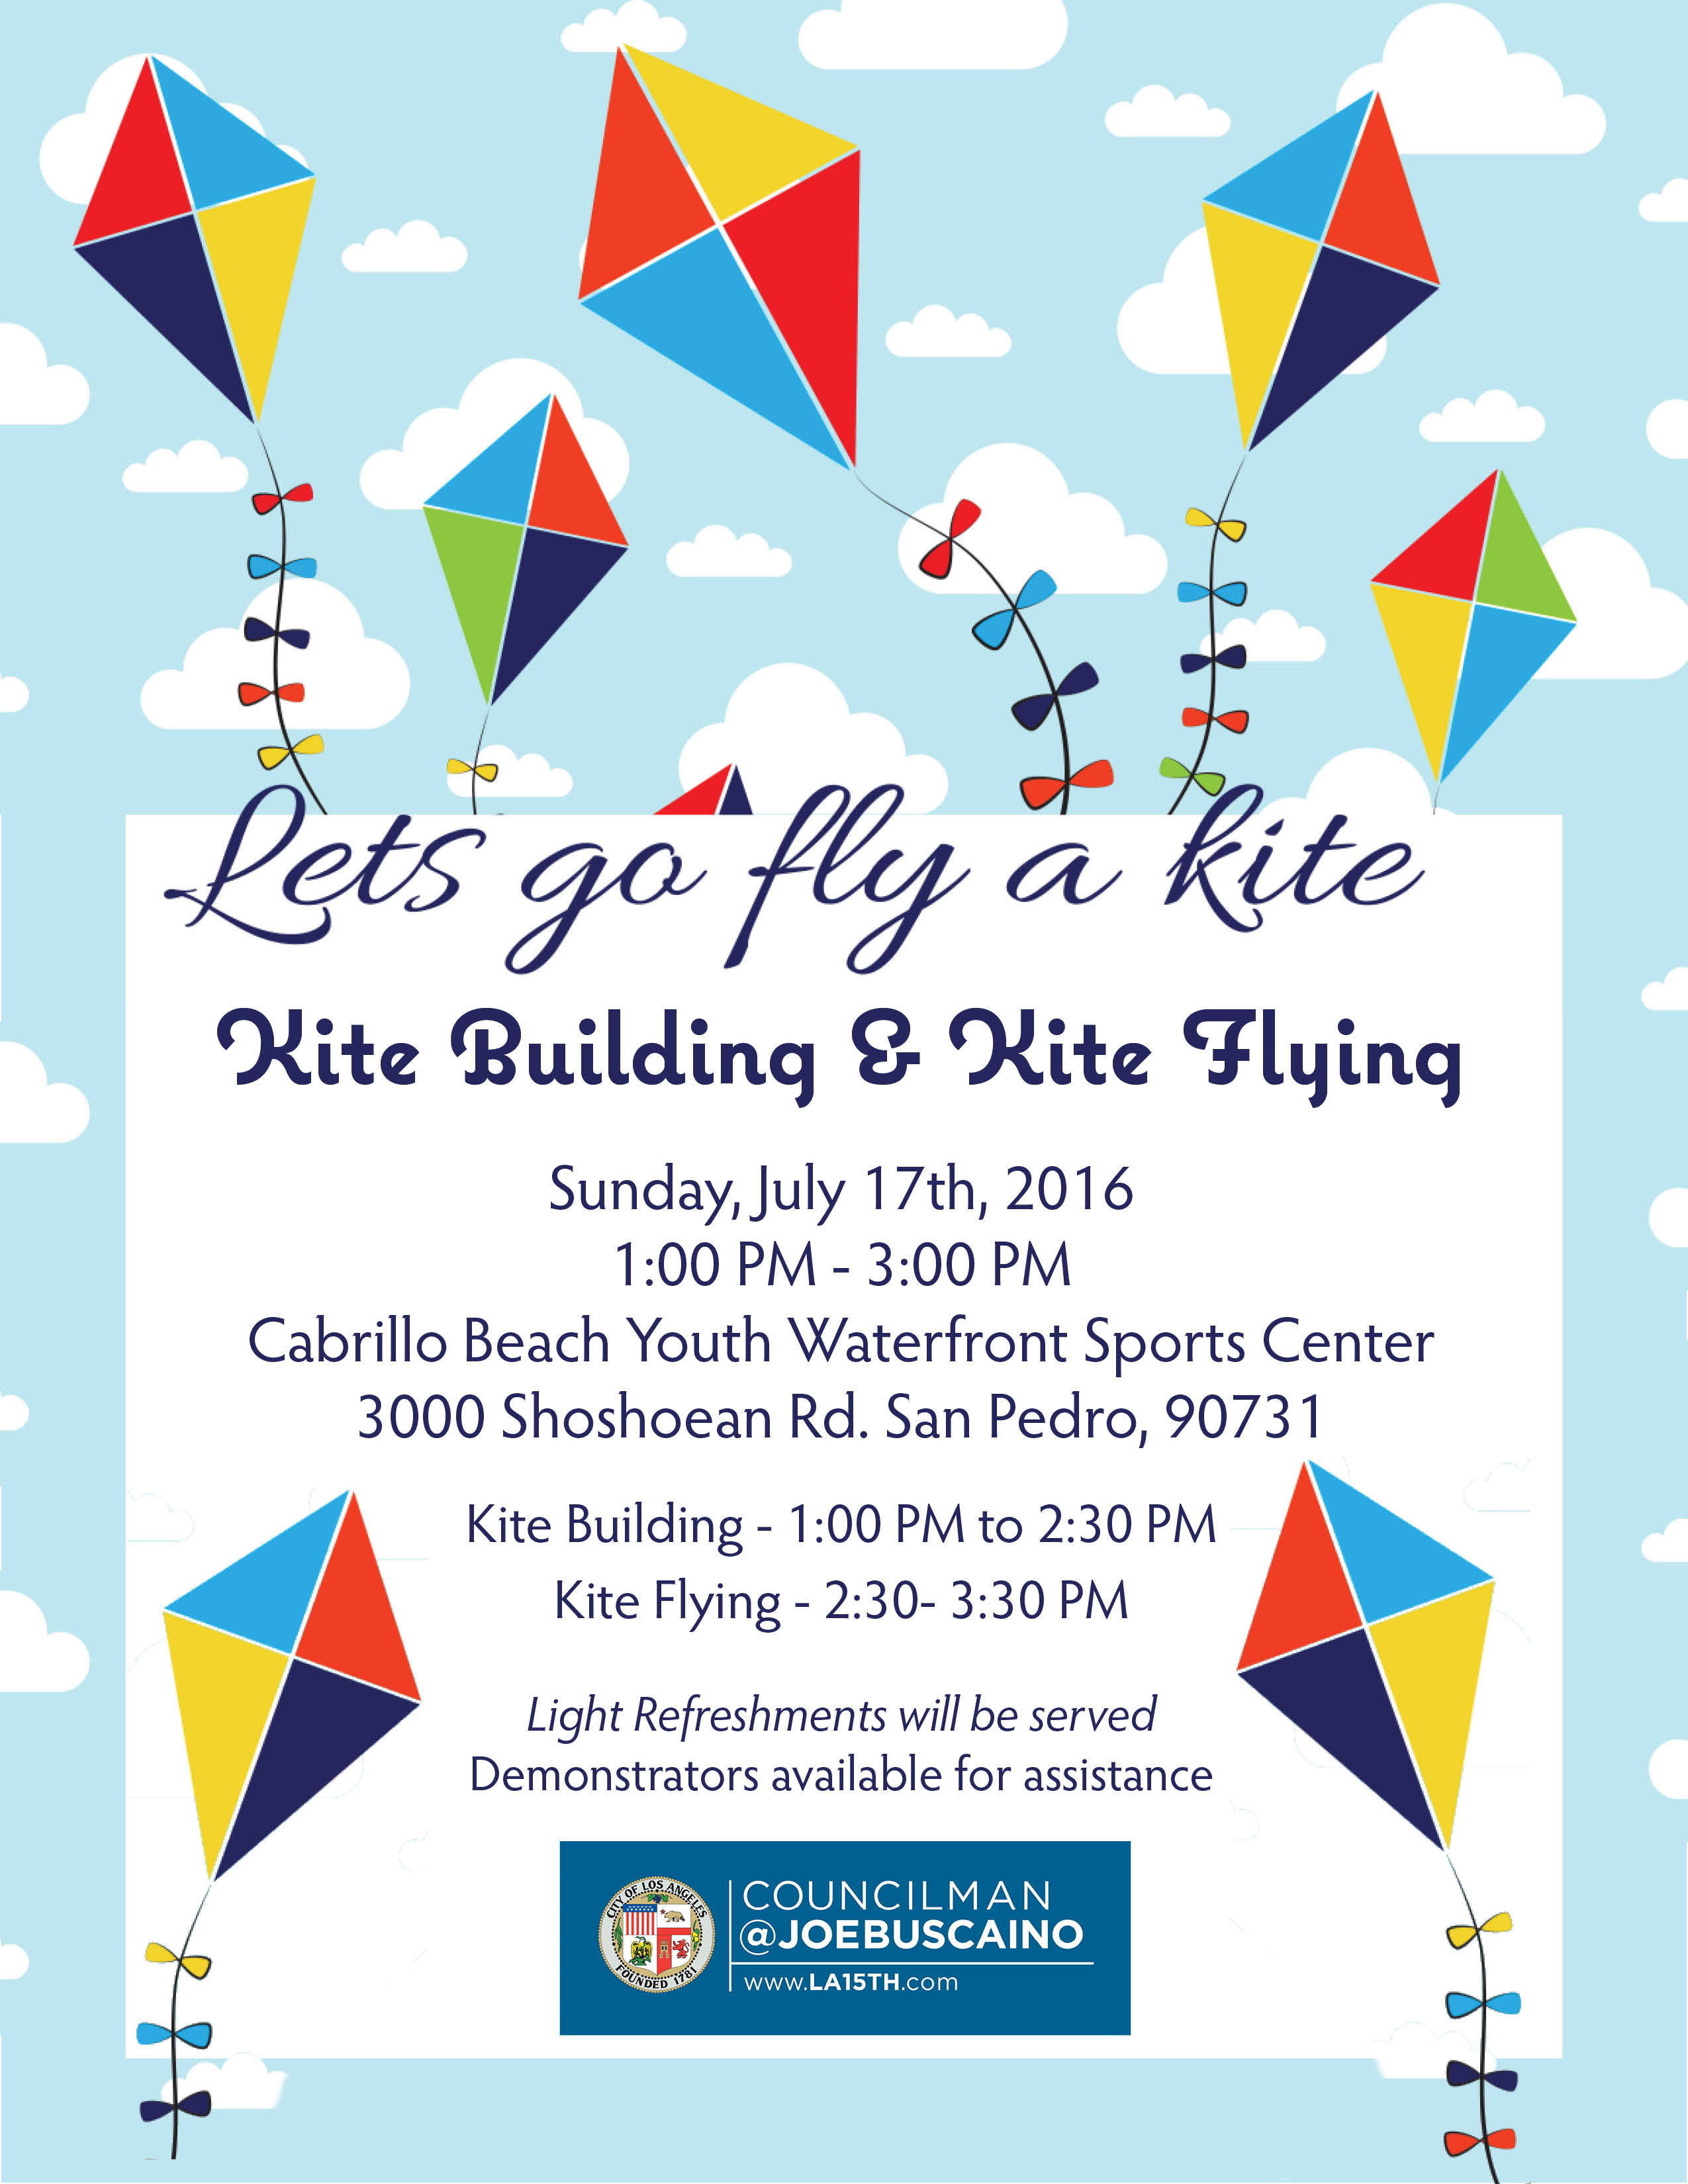 Kite_Flying_Flyer.jpg